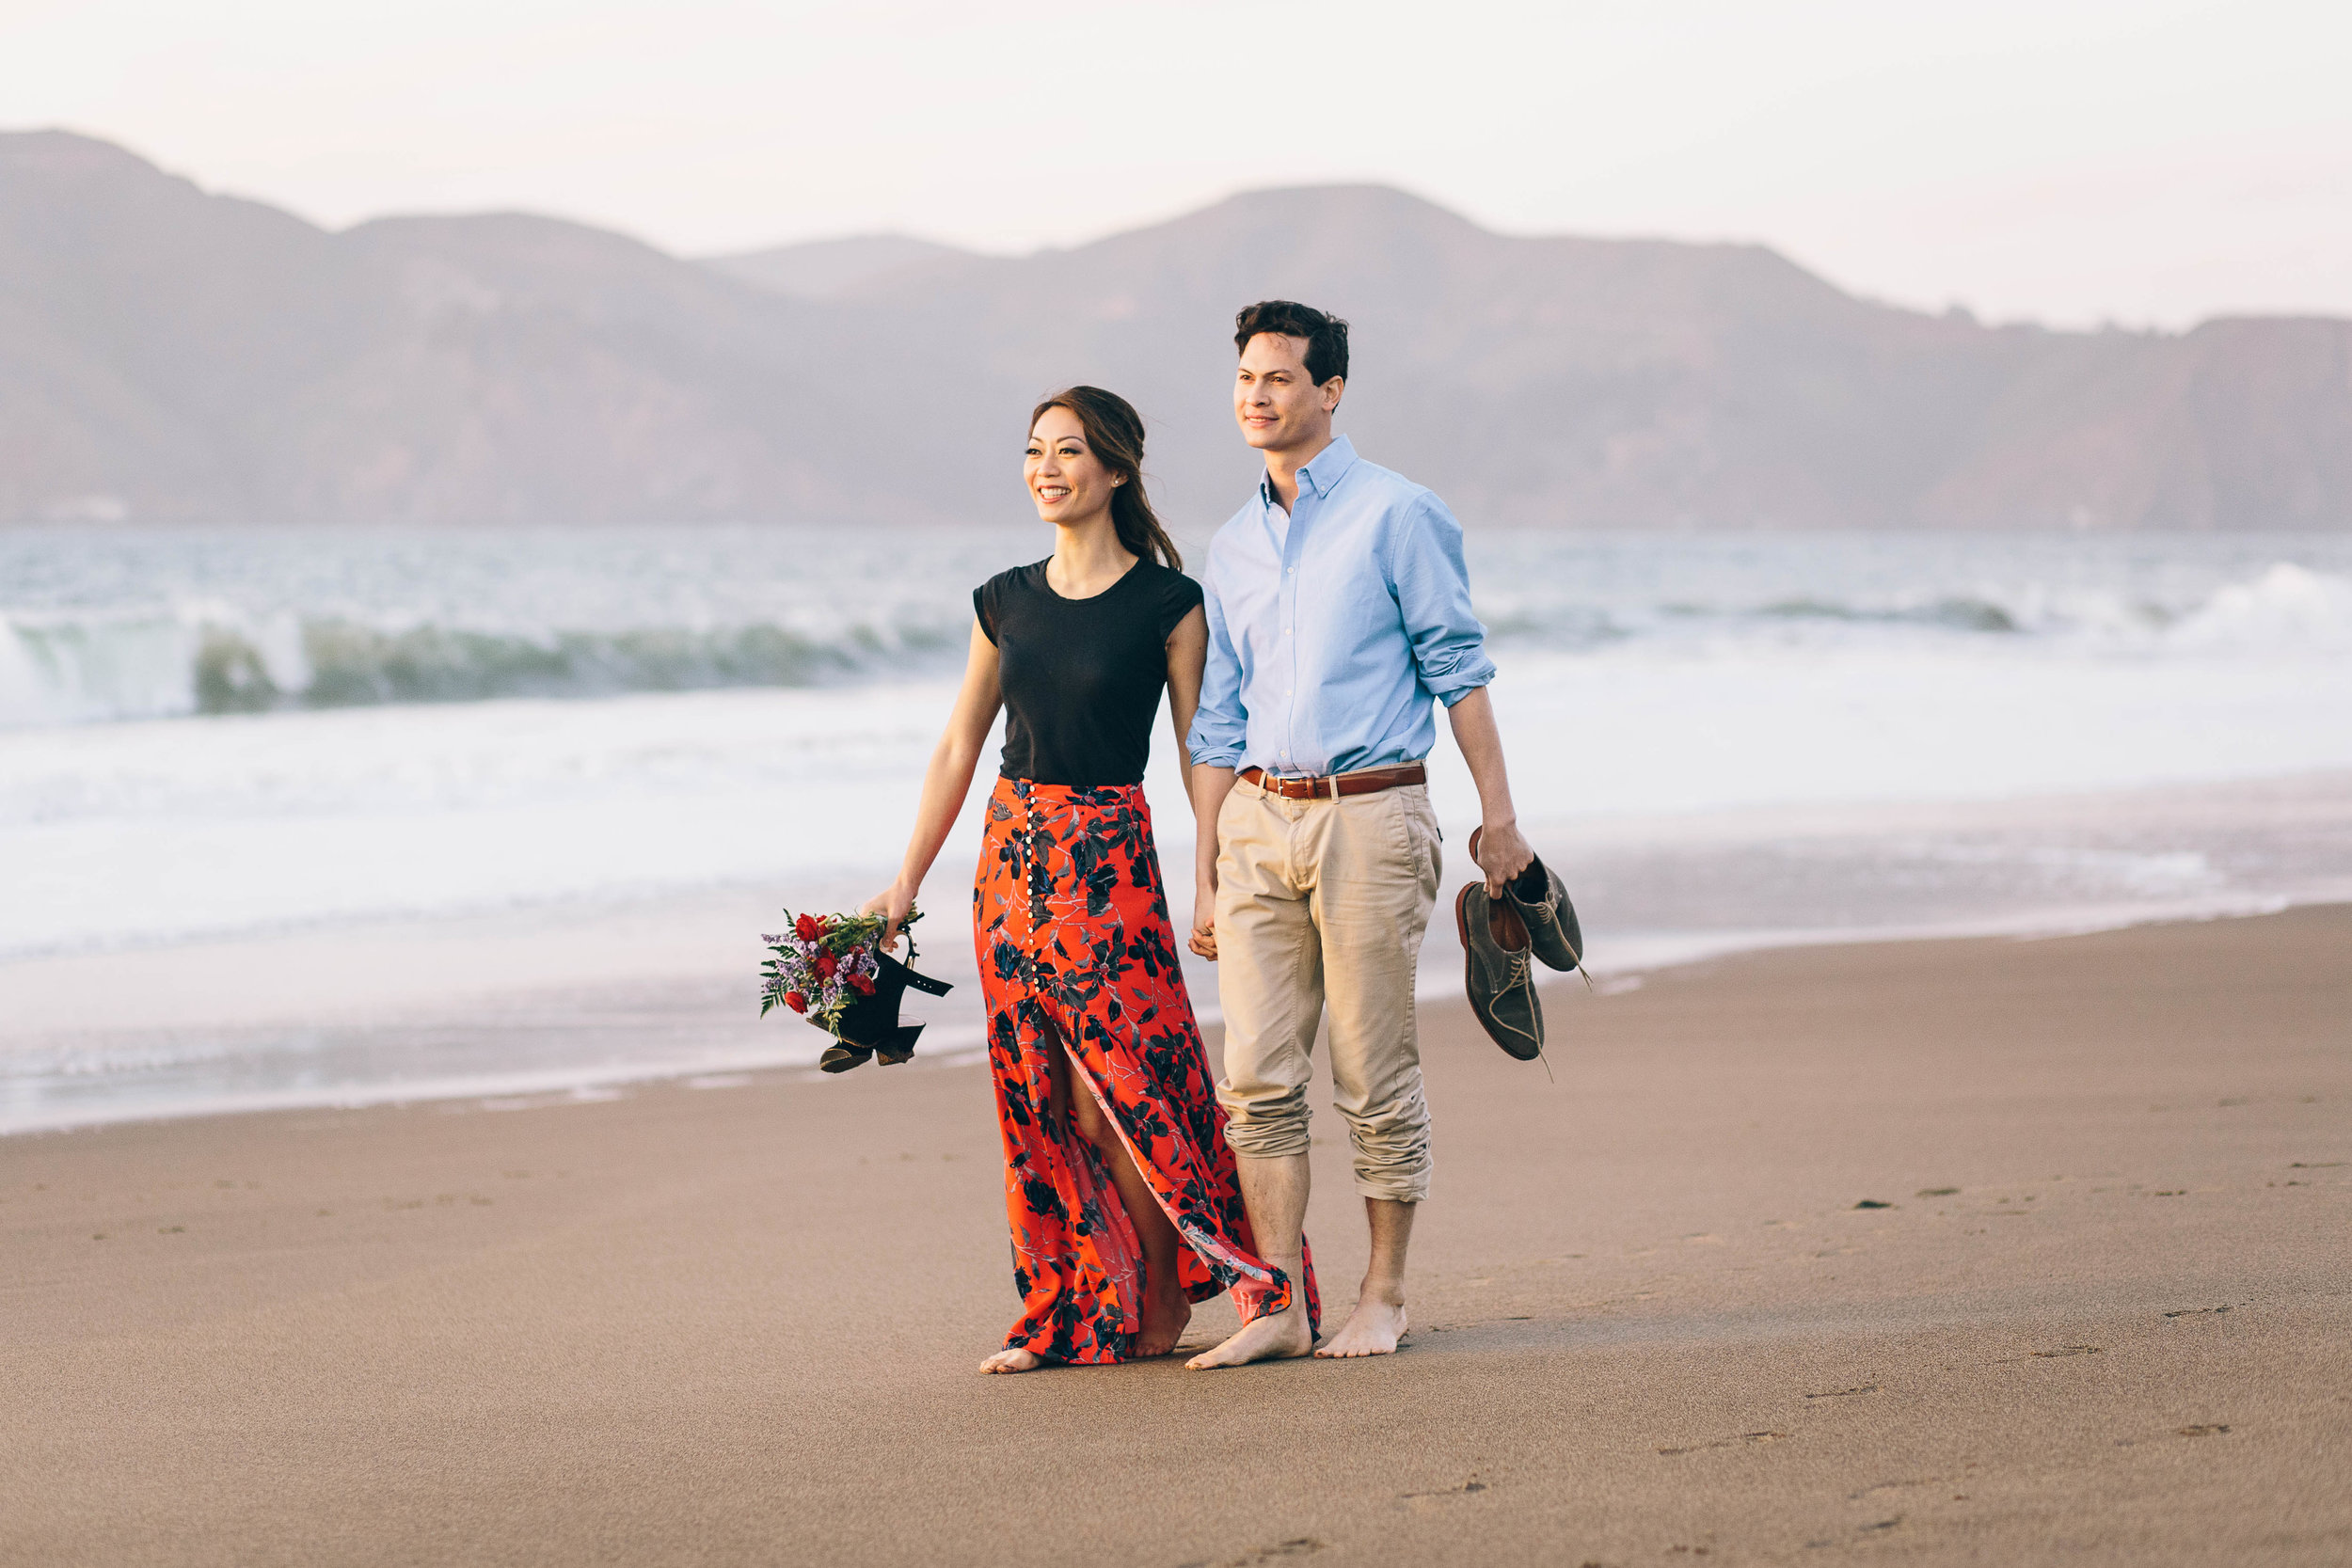 Best Engagement Photo Locations in San Francisco - Baker Beach Engagement Photos by JBJ Pictures (3).jpg